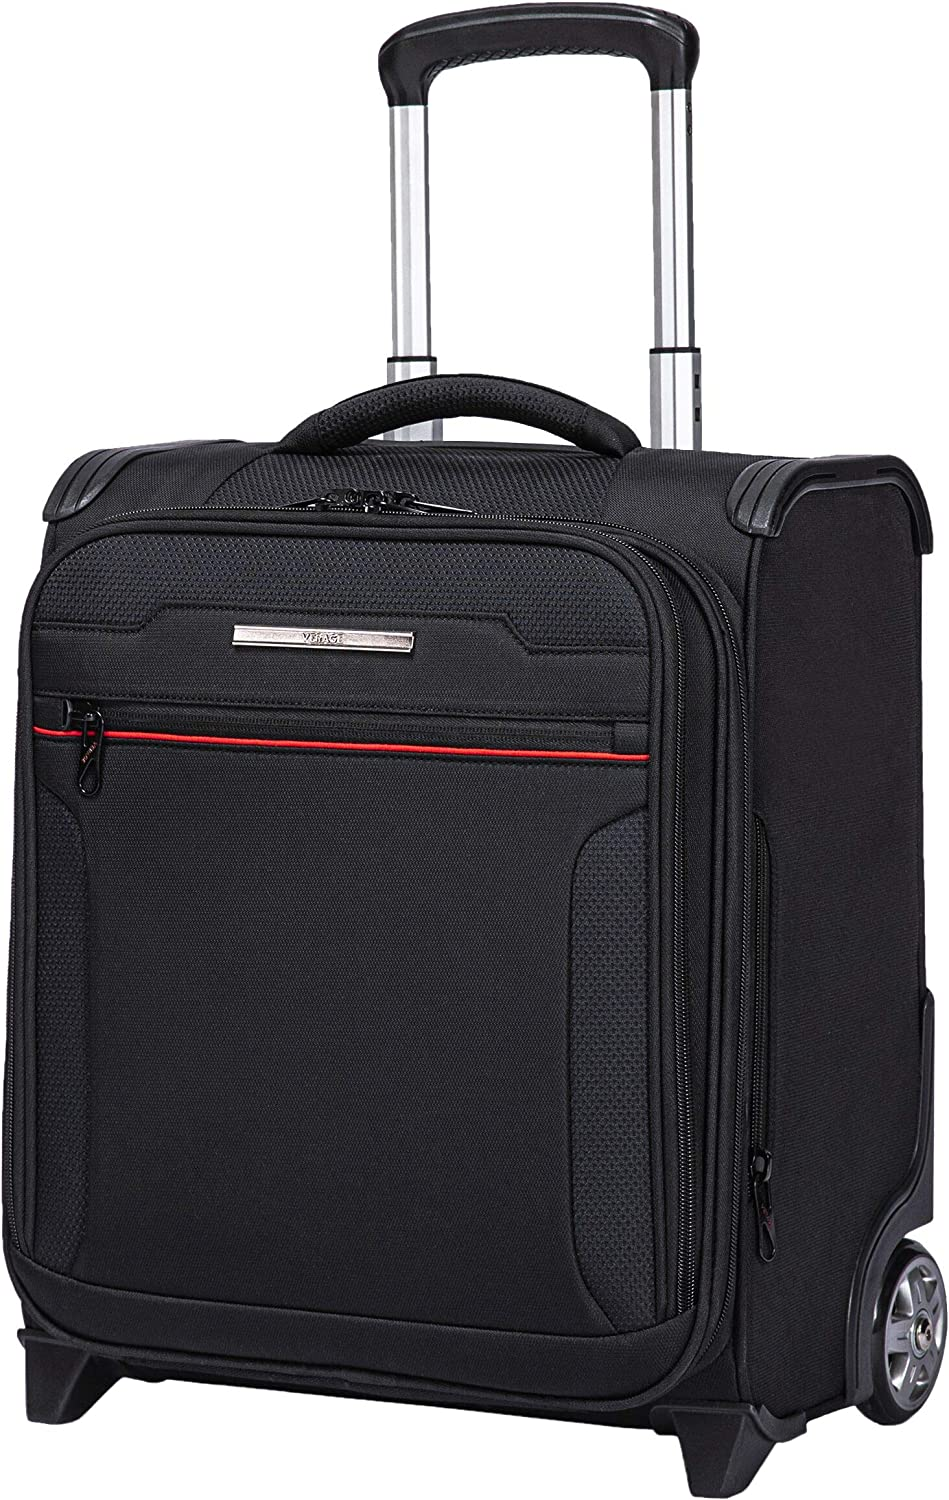 VERAGE Wheeled Underseat Carry-on Rolling business Suitcase with USB port,16.5 Inch Softside Airline Approved Luggage